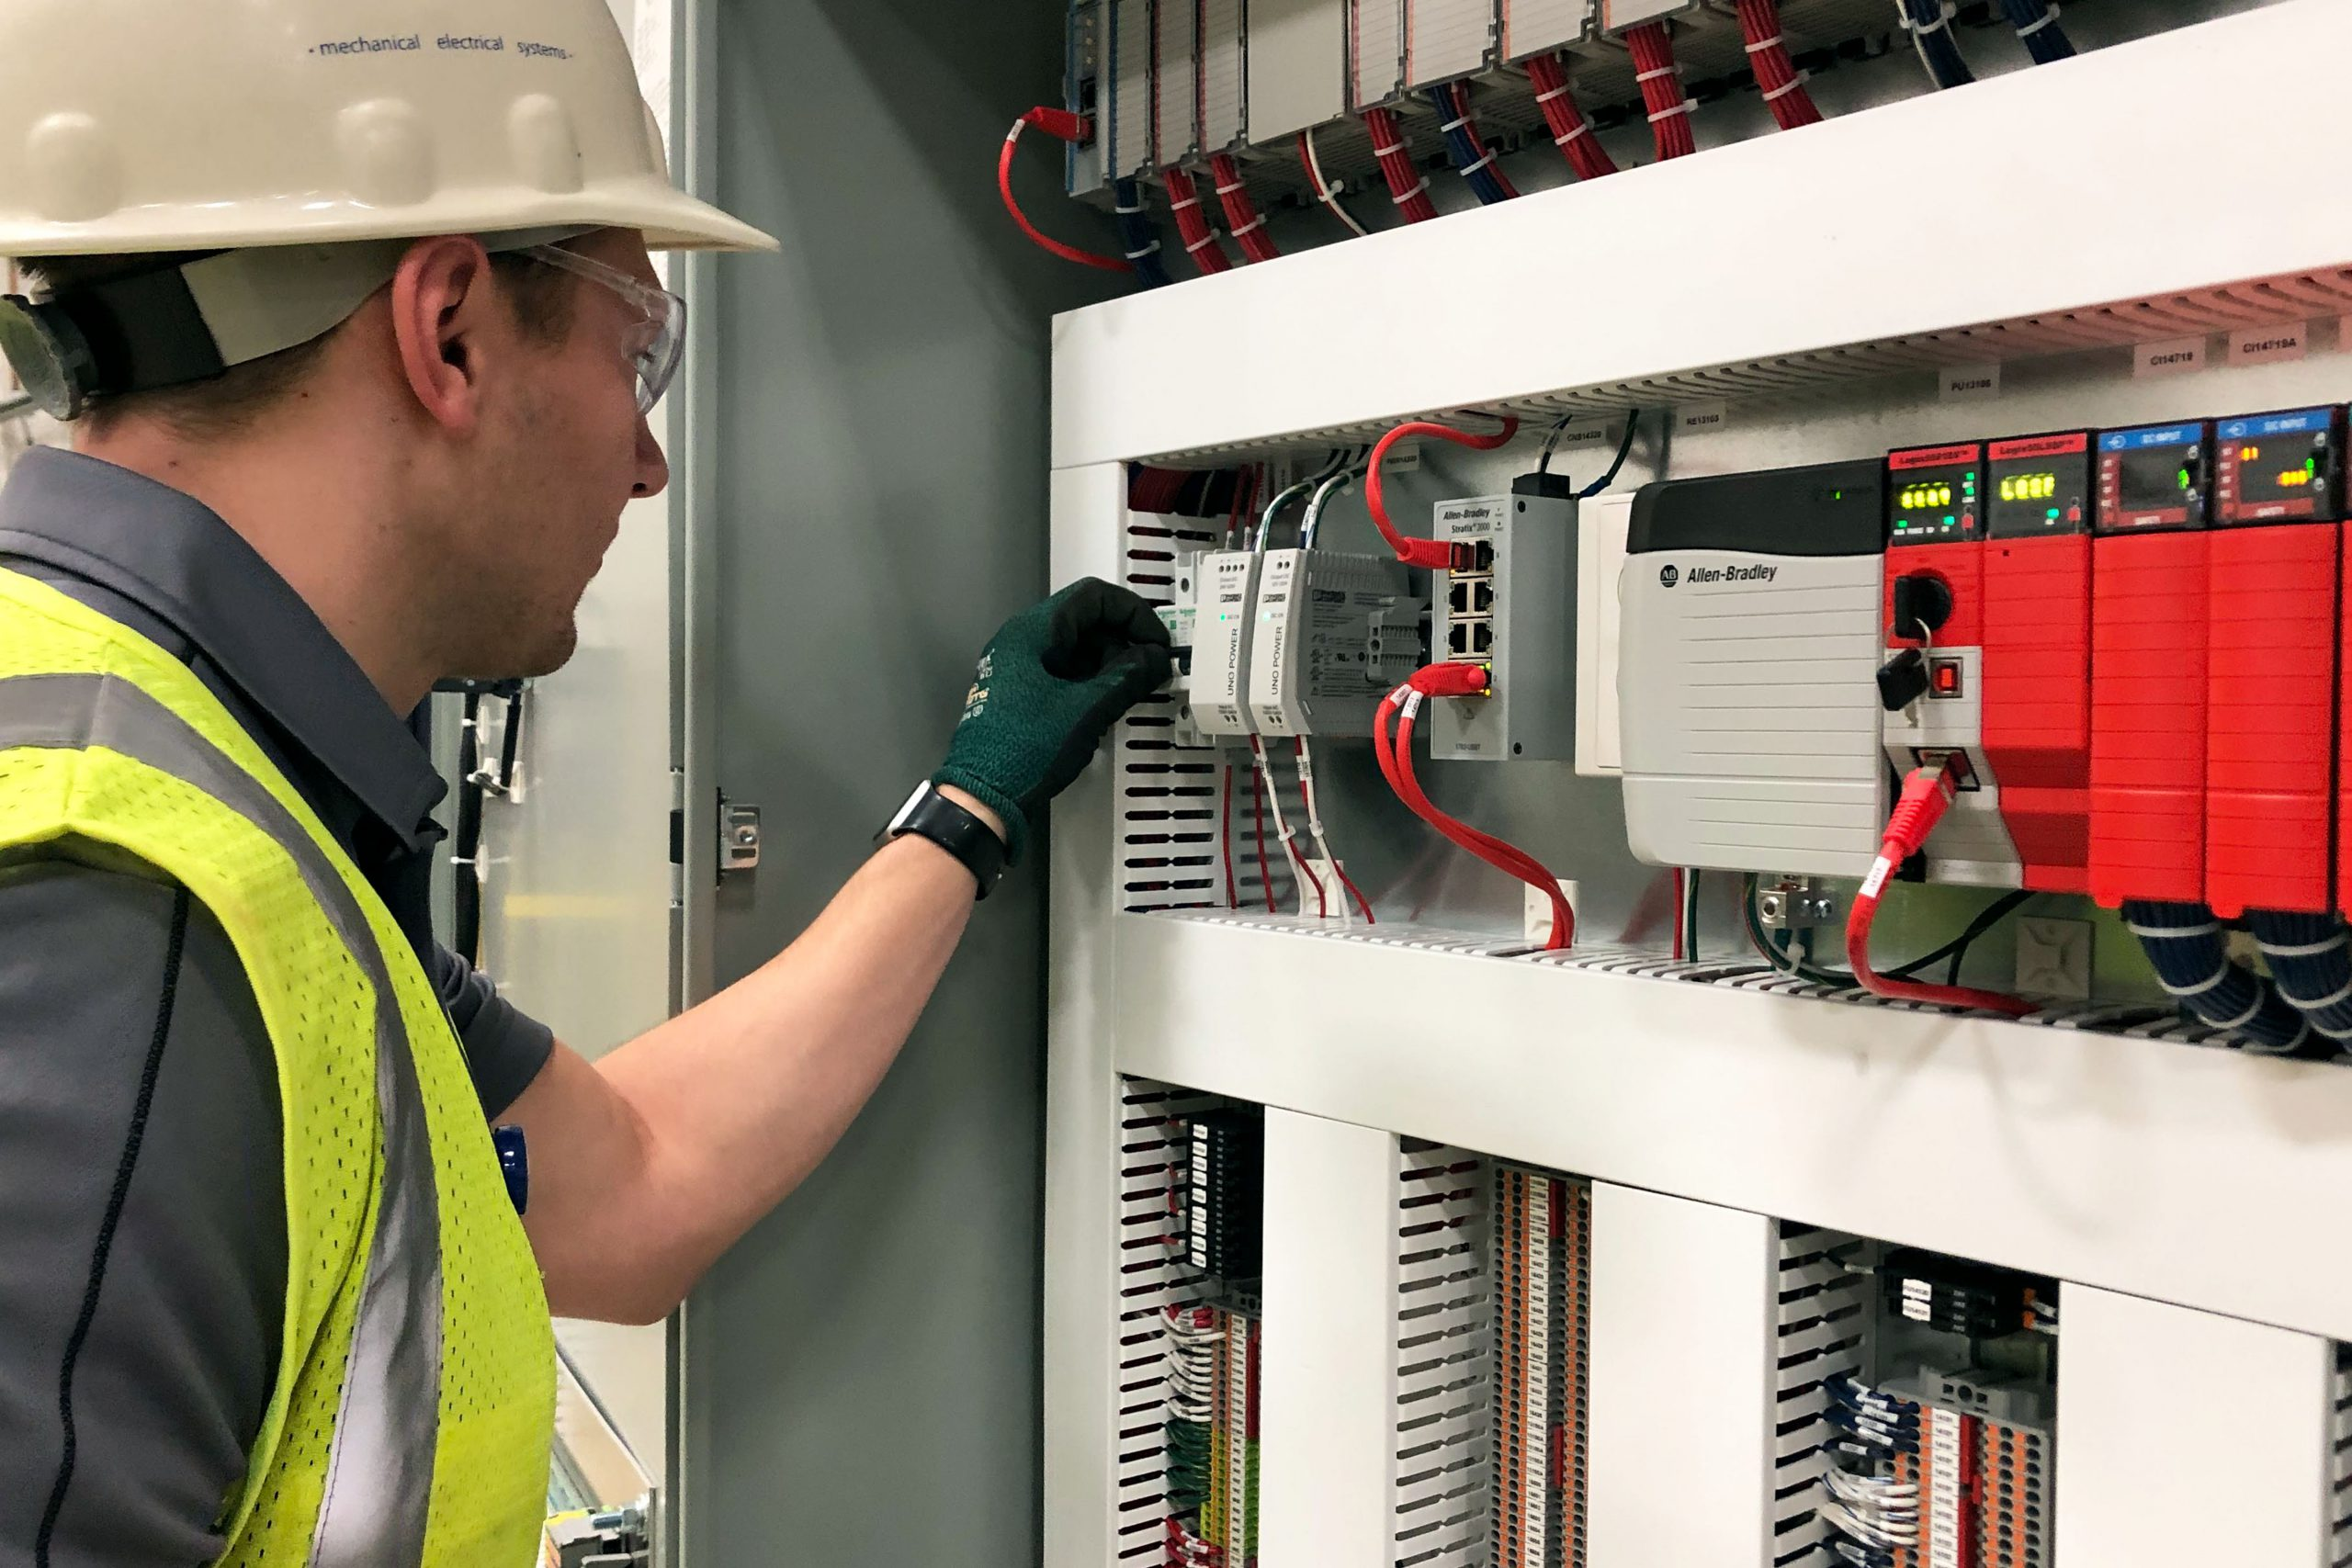 Engineer providing batching system services